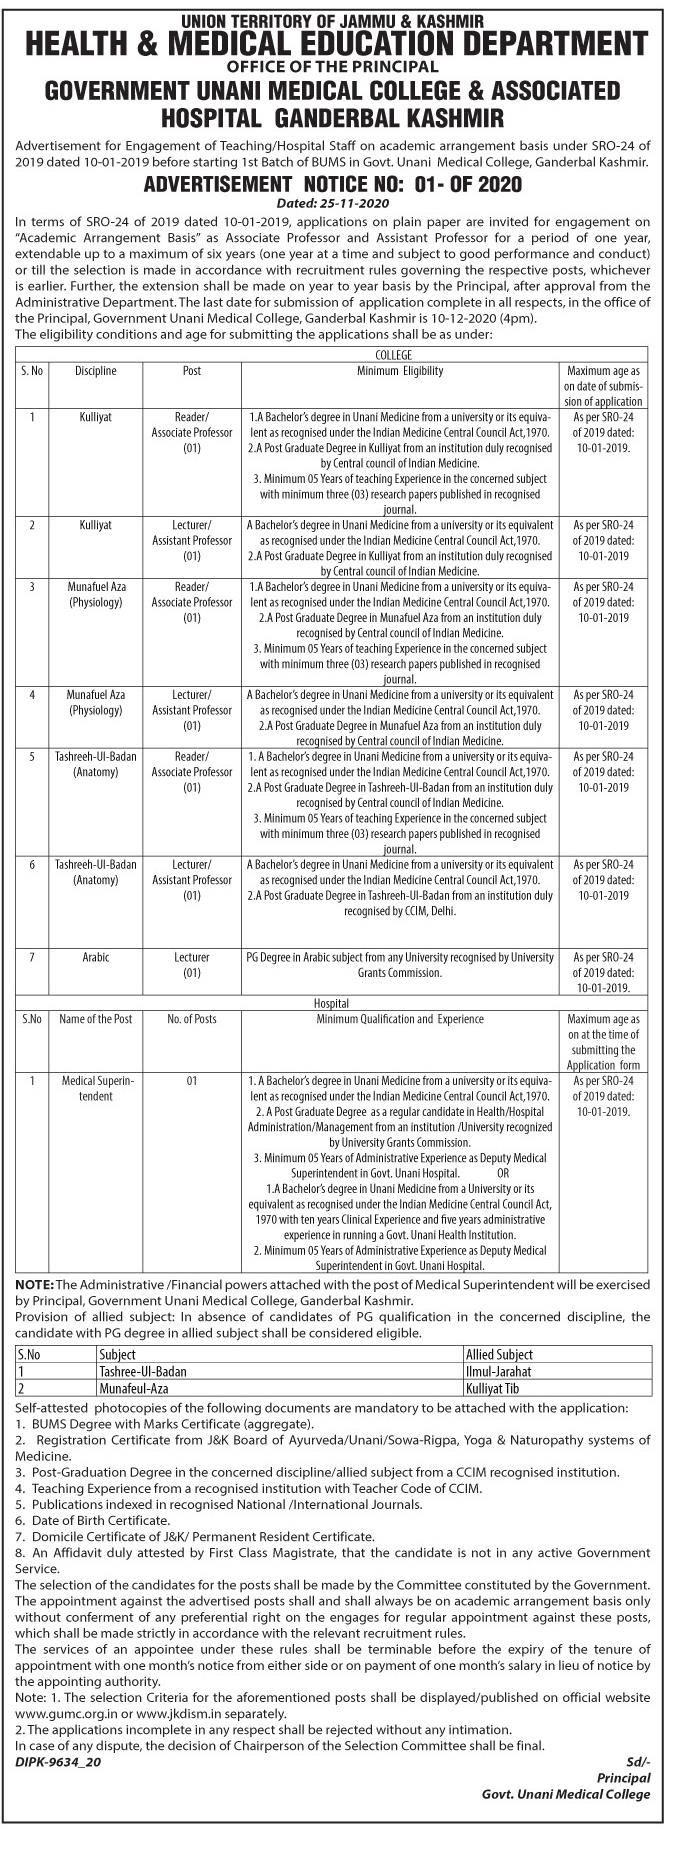 Jobs in GOVERNMENT UNANI MEDICAL COLLEGE & ASSOCIATED HOSPITAL GANDERBAL KASHMIR